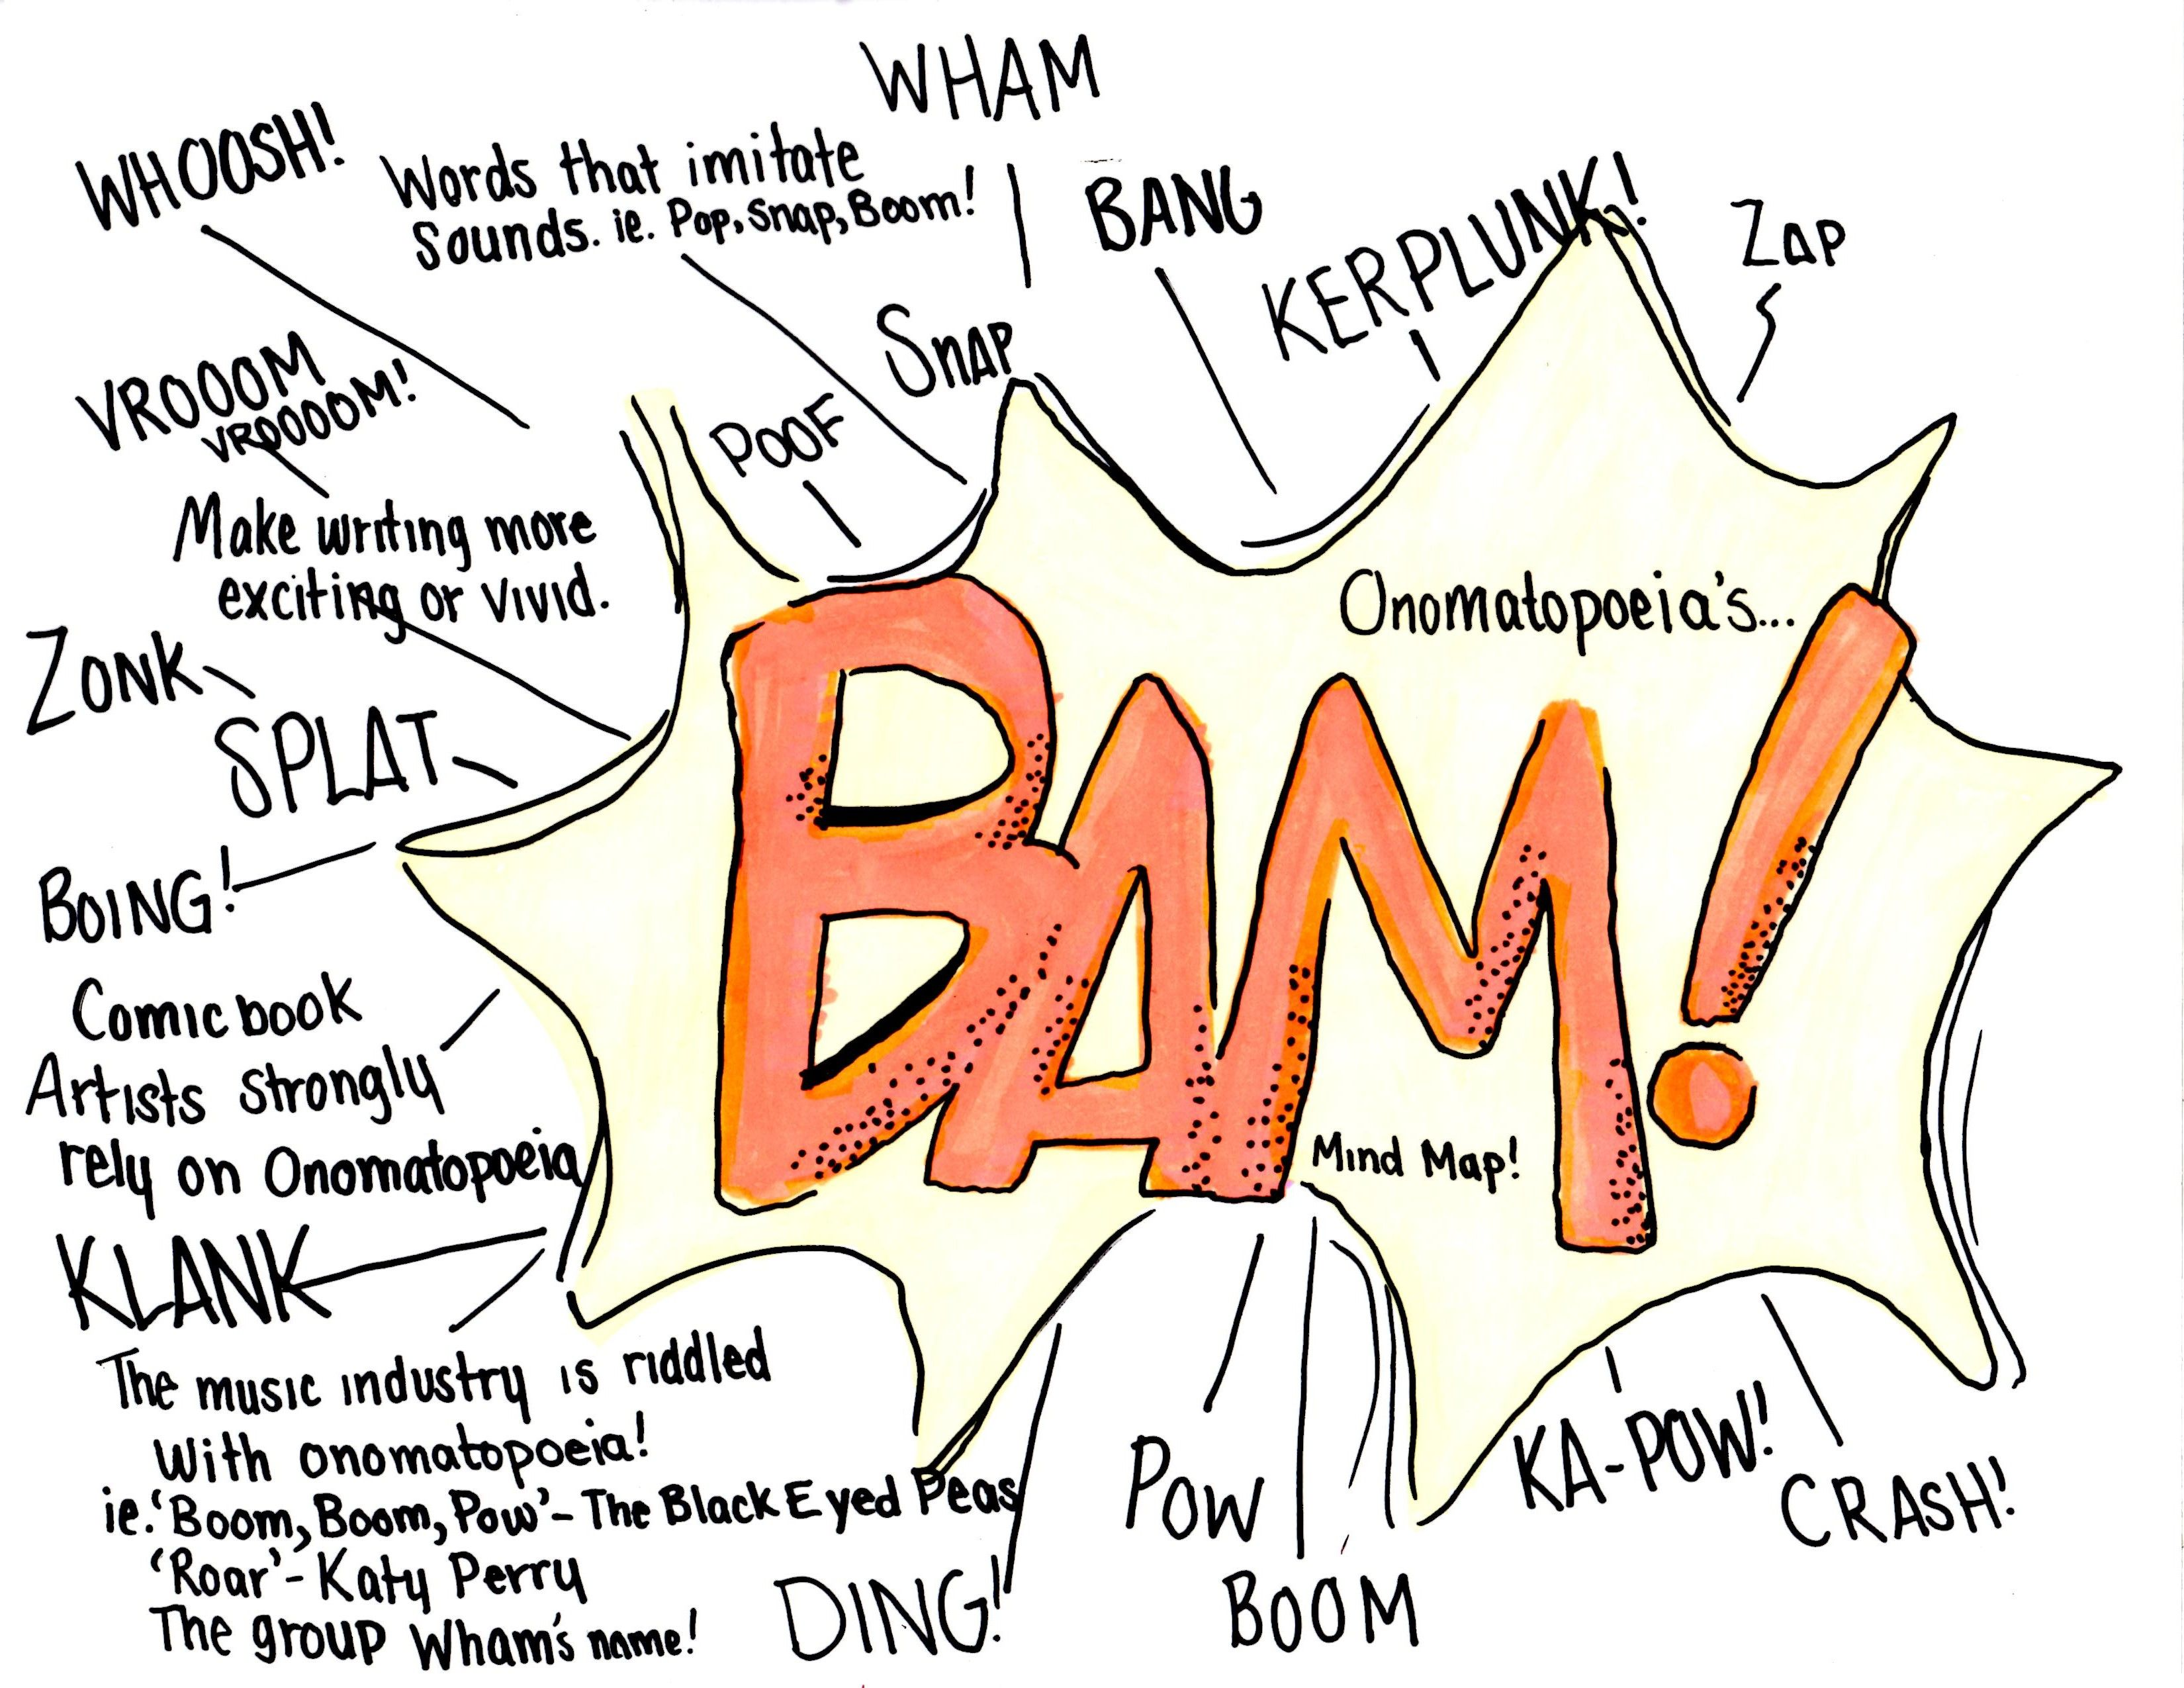 My Homemade Onomatopoeia Mind Map Provides Definitions Of The Word